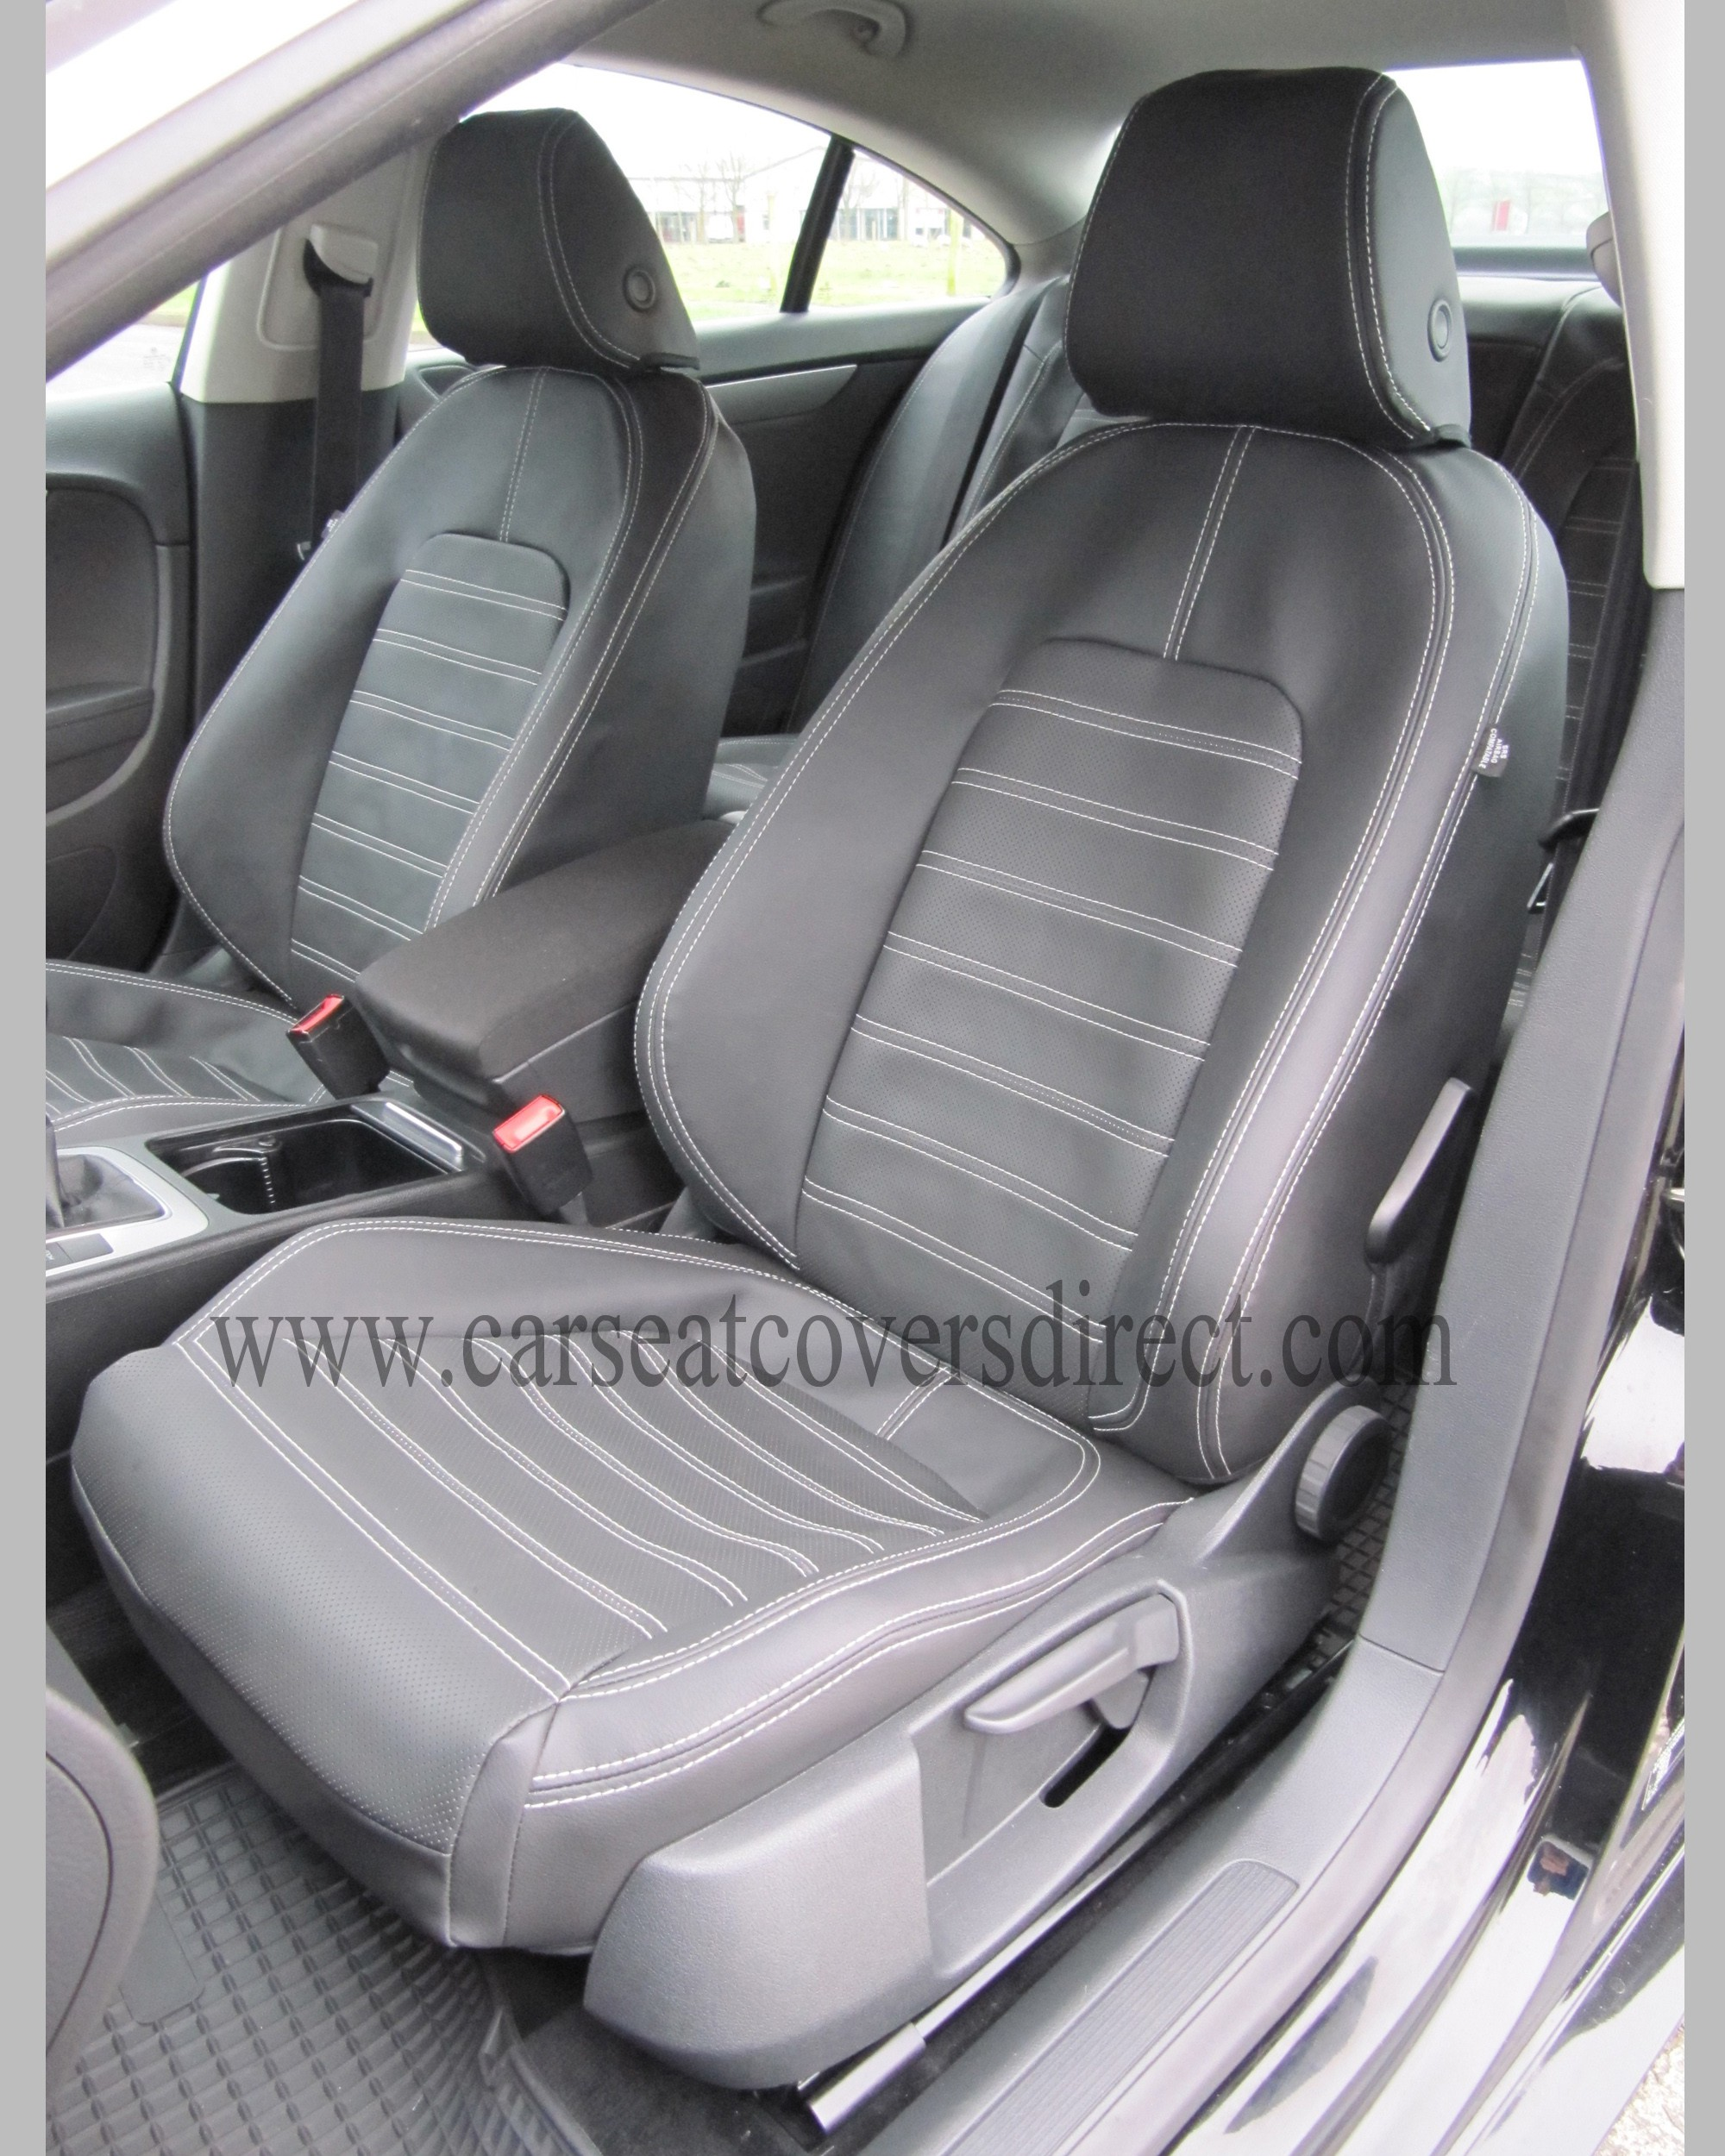 Volkswagen VW Passat CC Seat Covers - Charcoal Leatherette